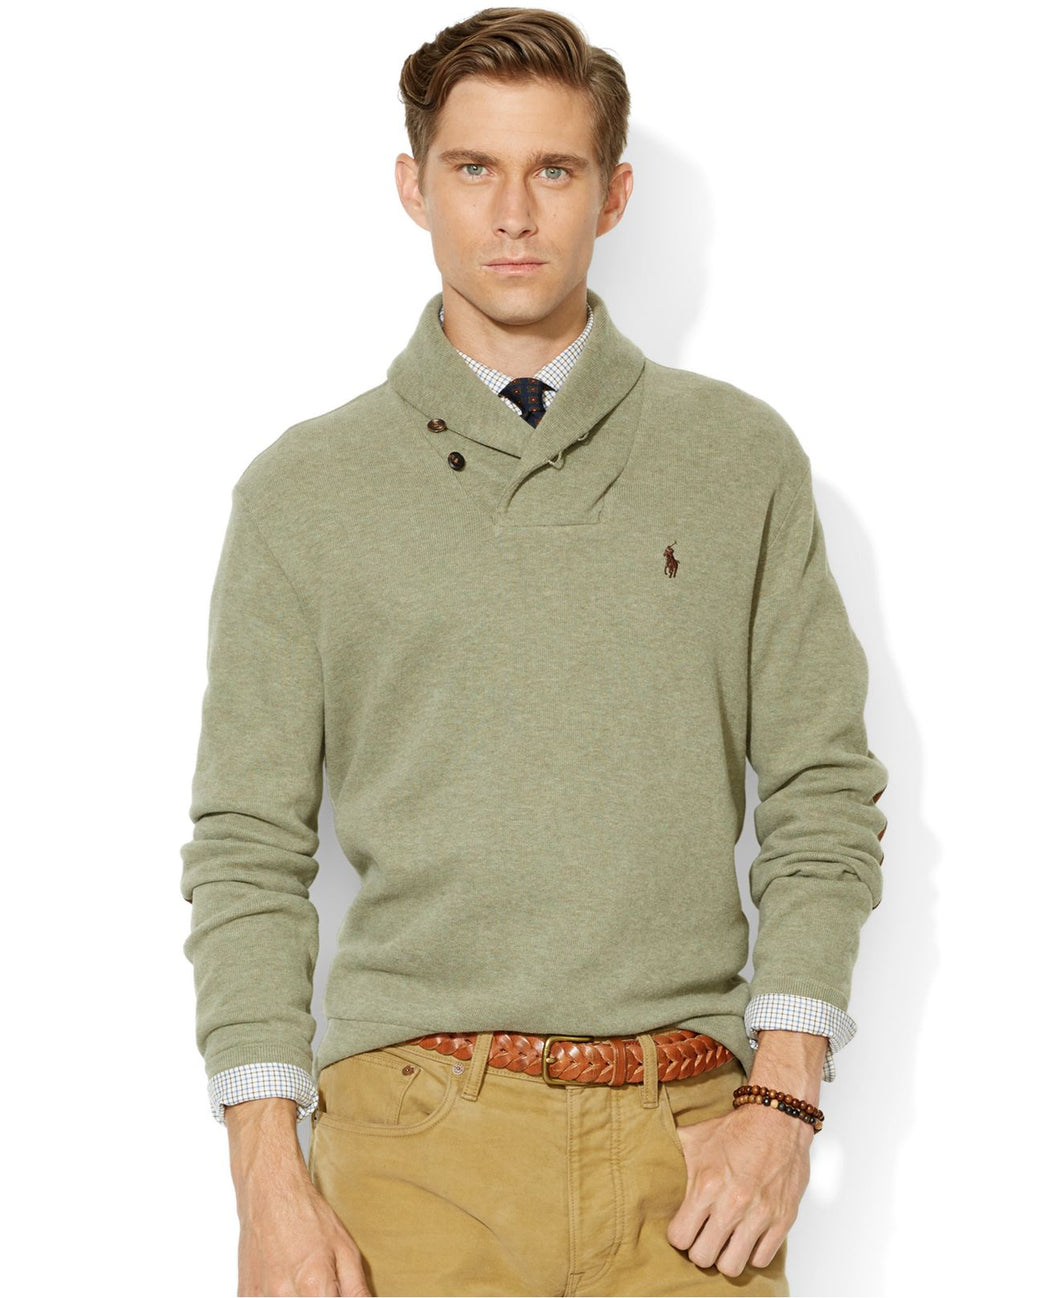 Mens shawl collar sweater - Sage